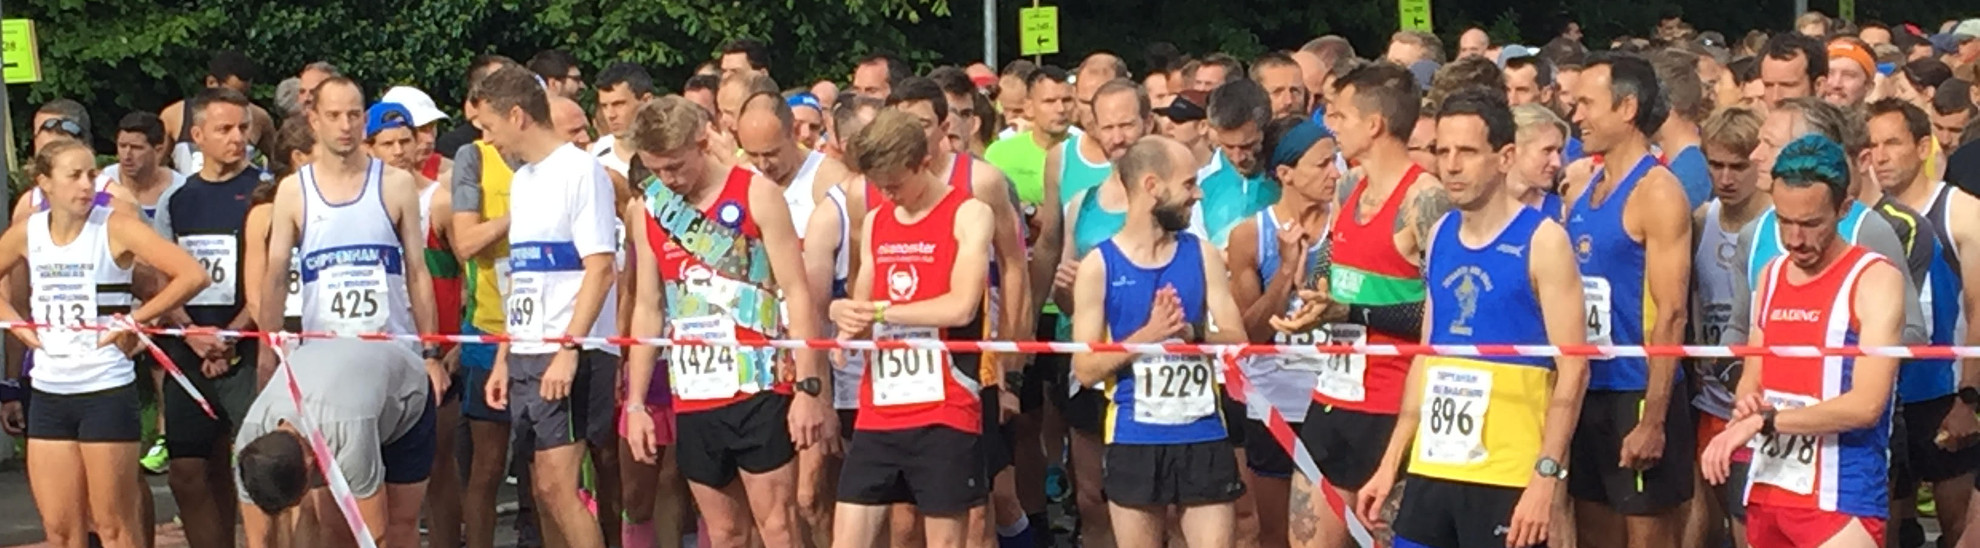 Runners at the start line of Chippenham marathon